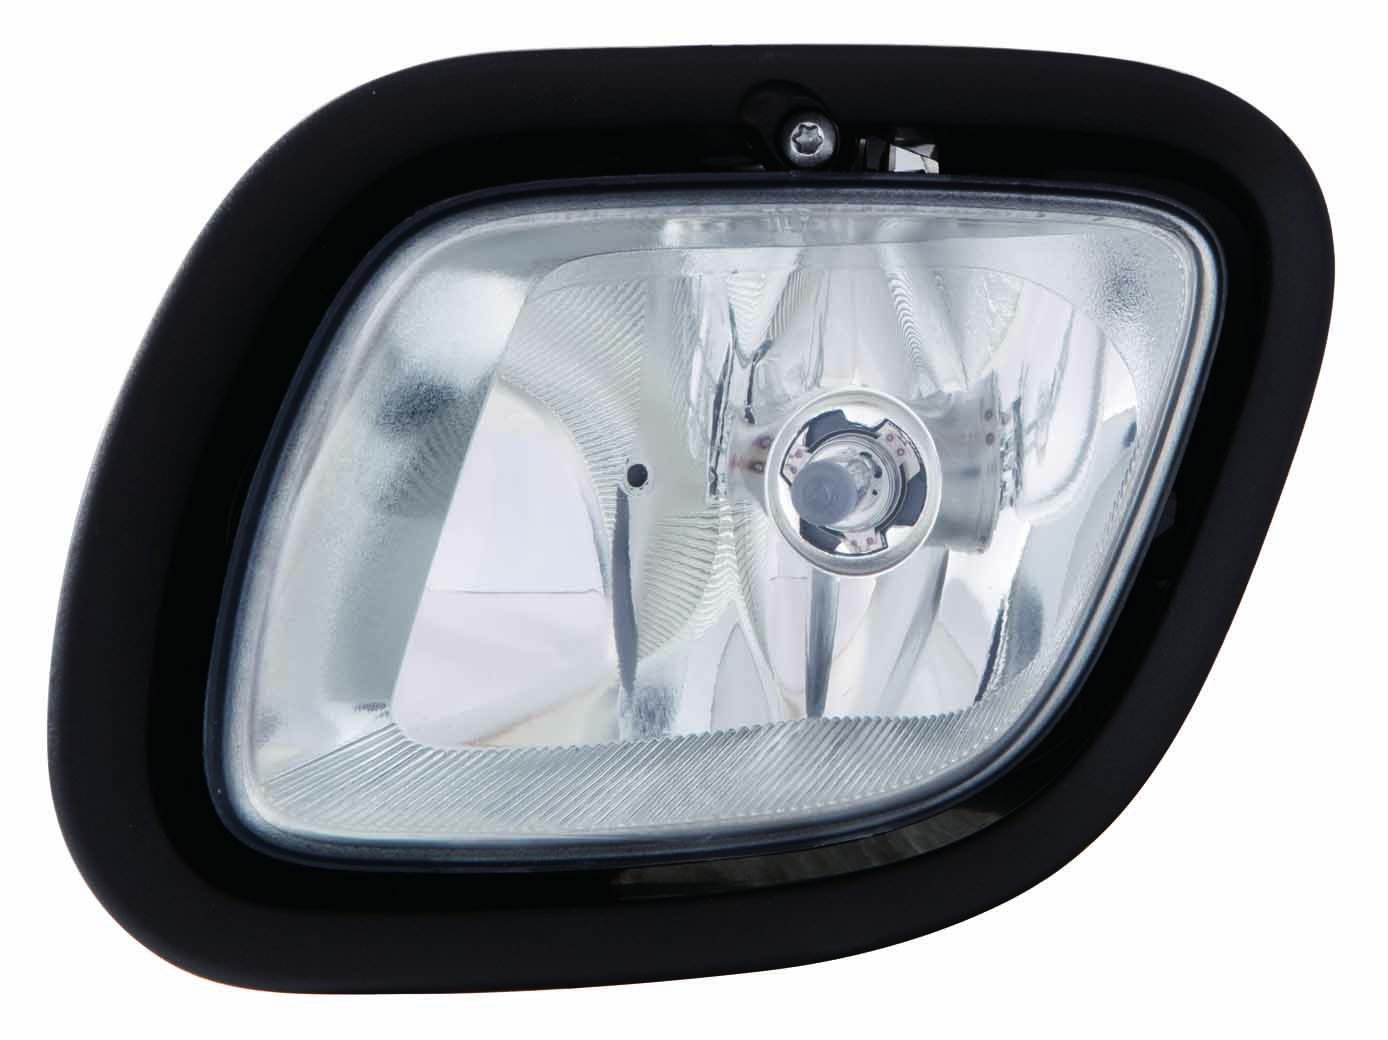 Freightliner Cascadia Fog Light Assembly LH 2008-2012 by Depo